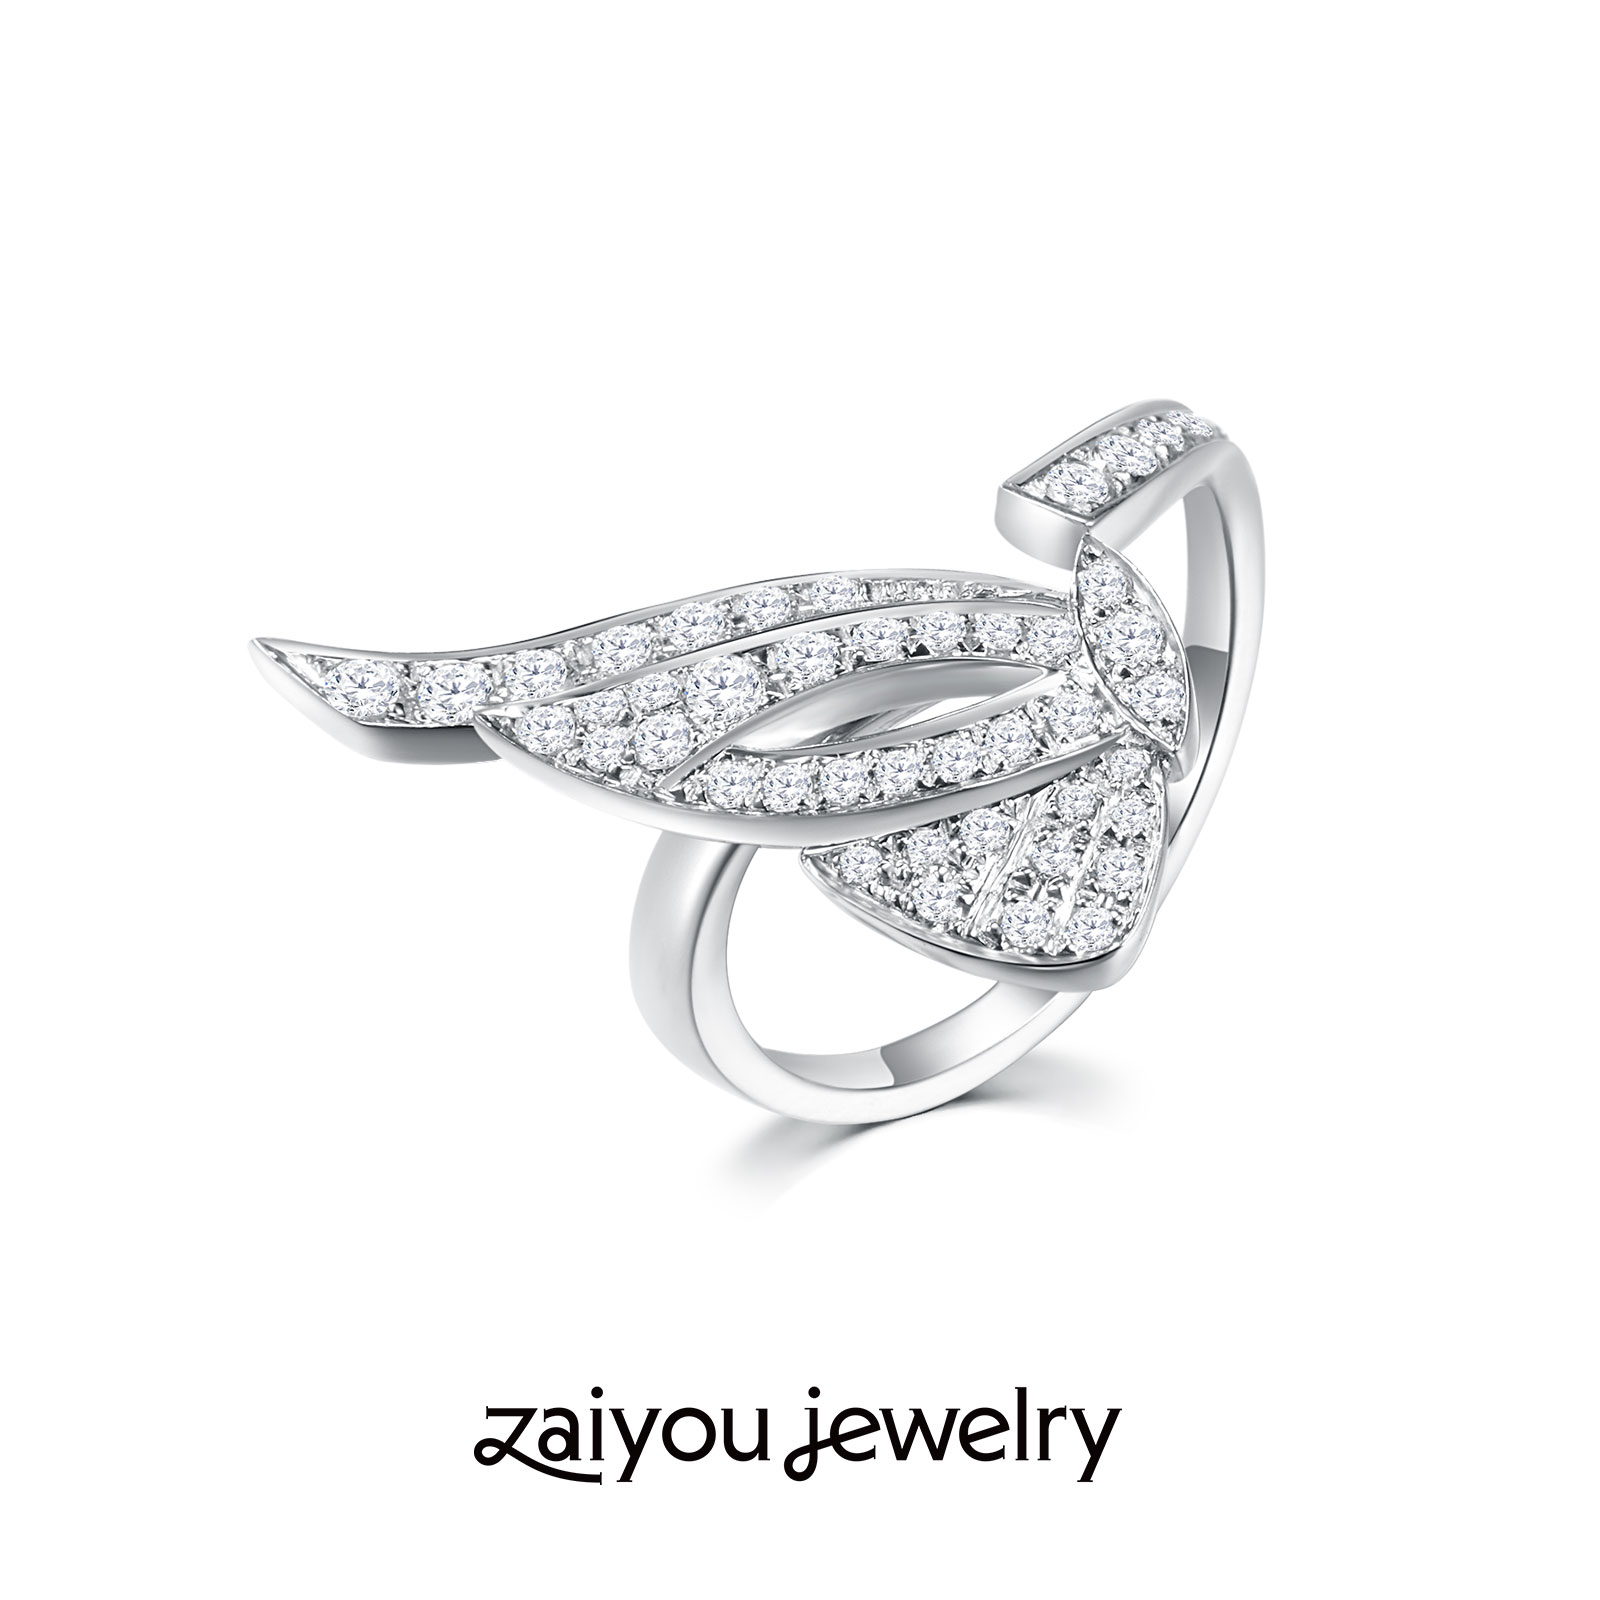 [everything grows] the joy lies in the forgiveness of Designer Series: K-gold art creative artificial diamond jewelry ring